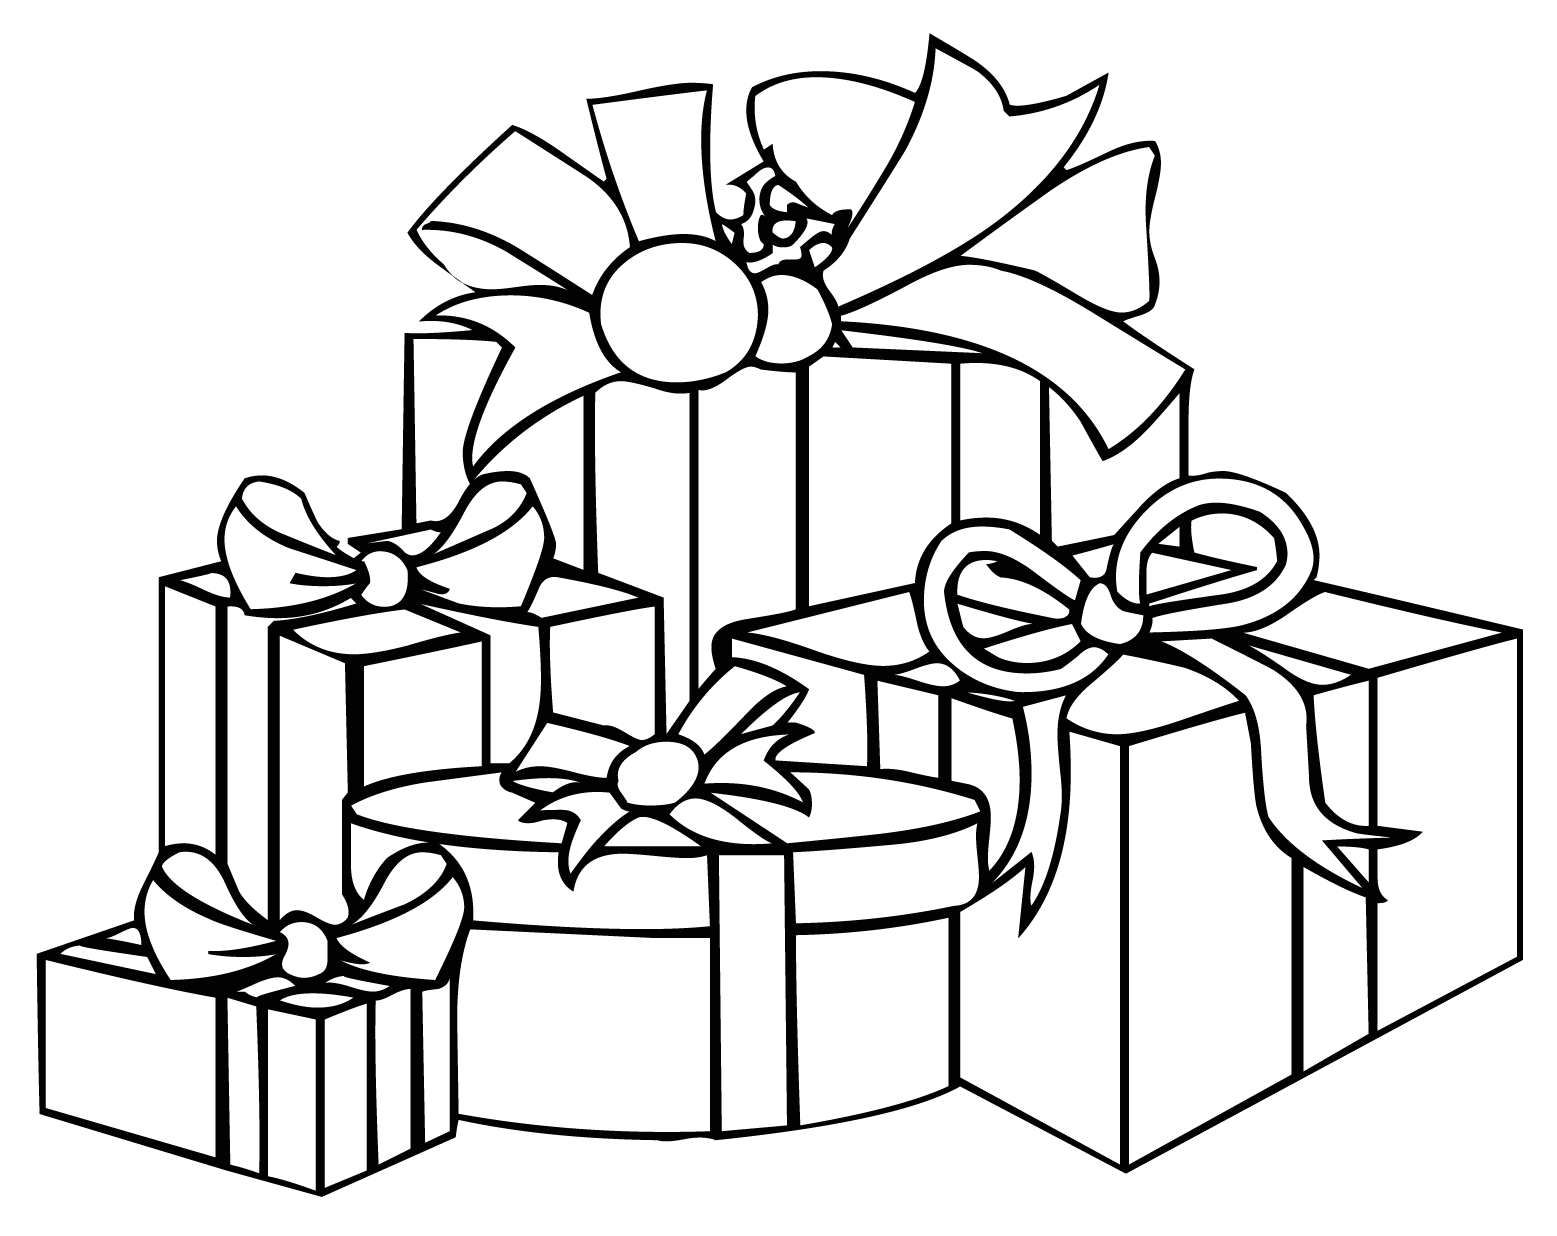 how to draw a christmas present present outline present clipart outline free download jpg to christmas a present draw how